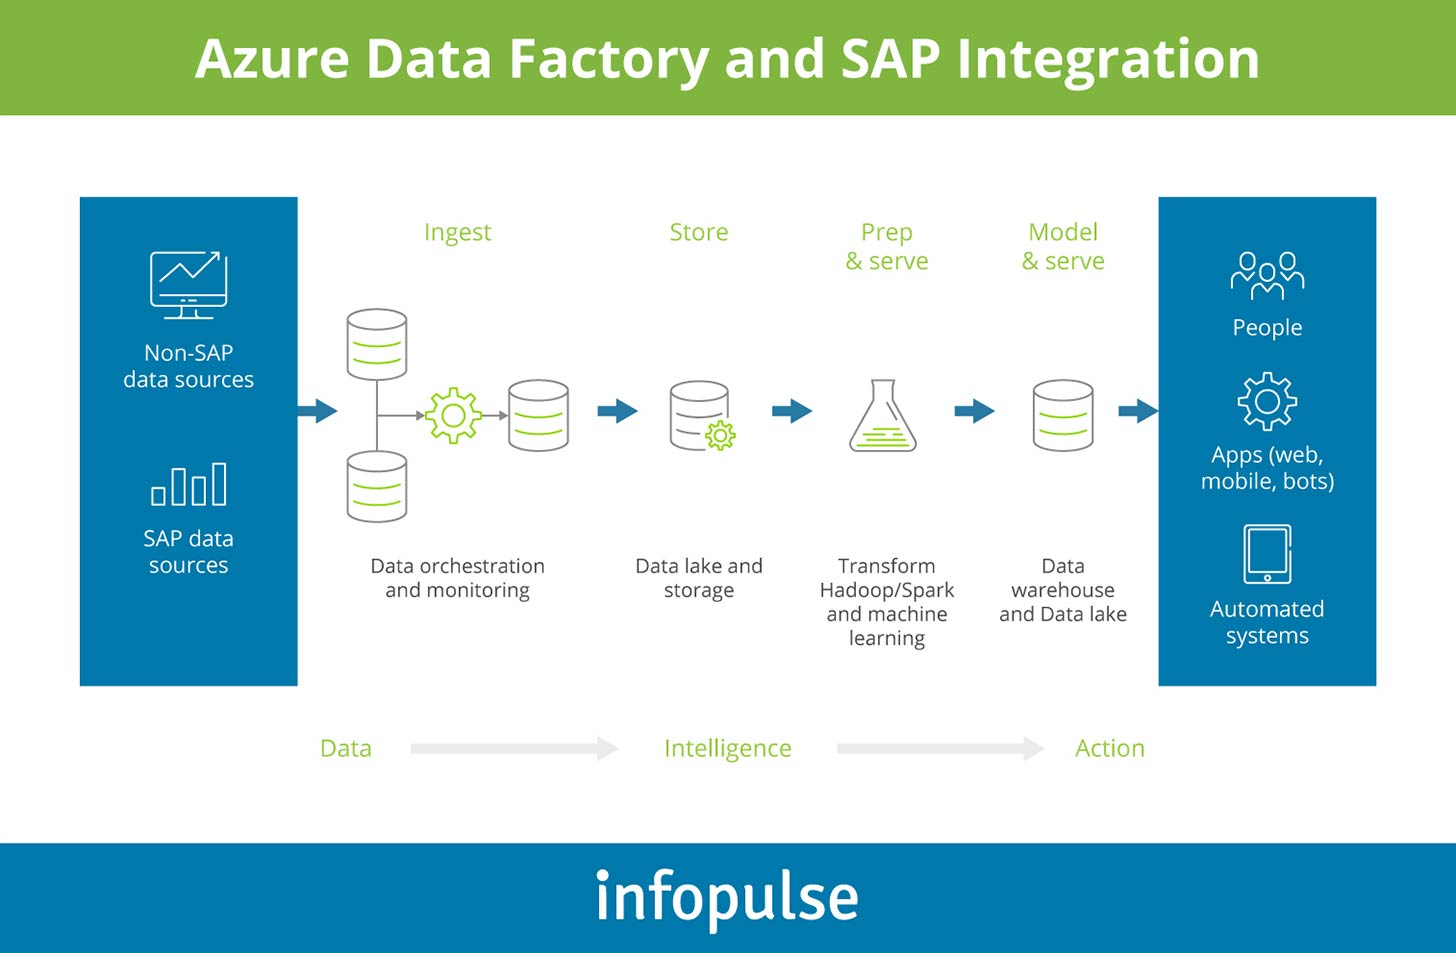 Azure Data Factory and SAP Integration - Infopulse - 1